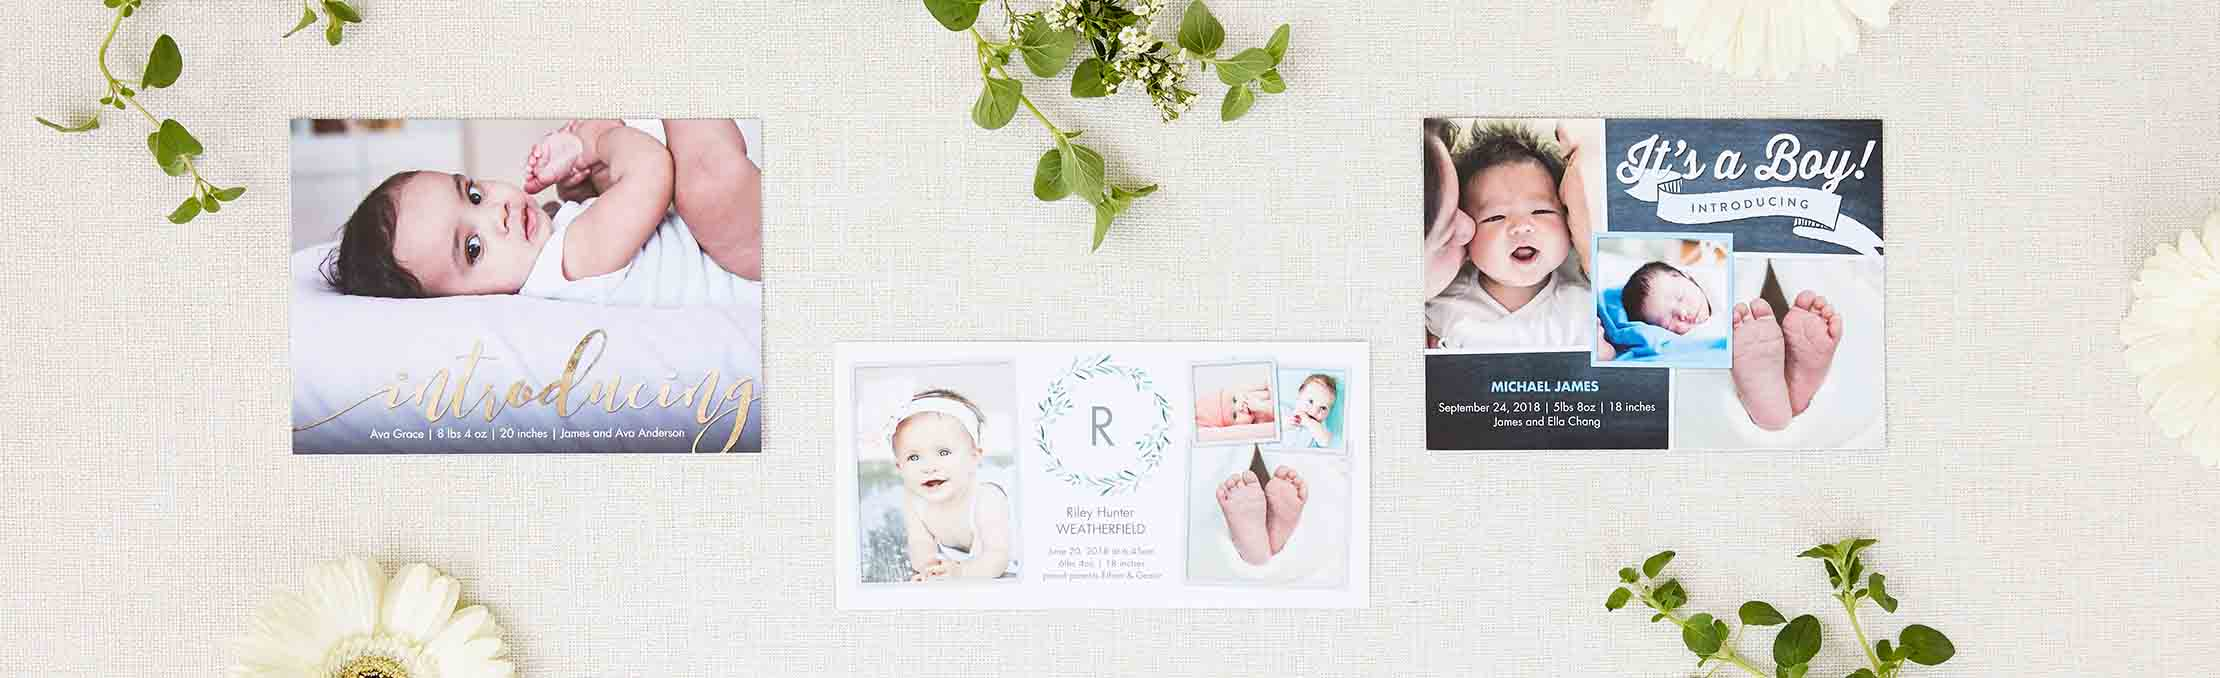 How to Word Birth Announcements